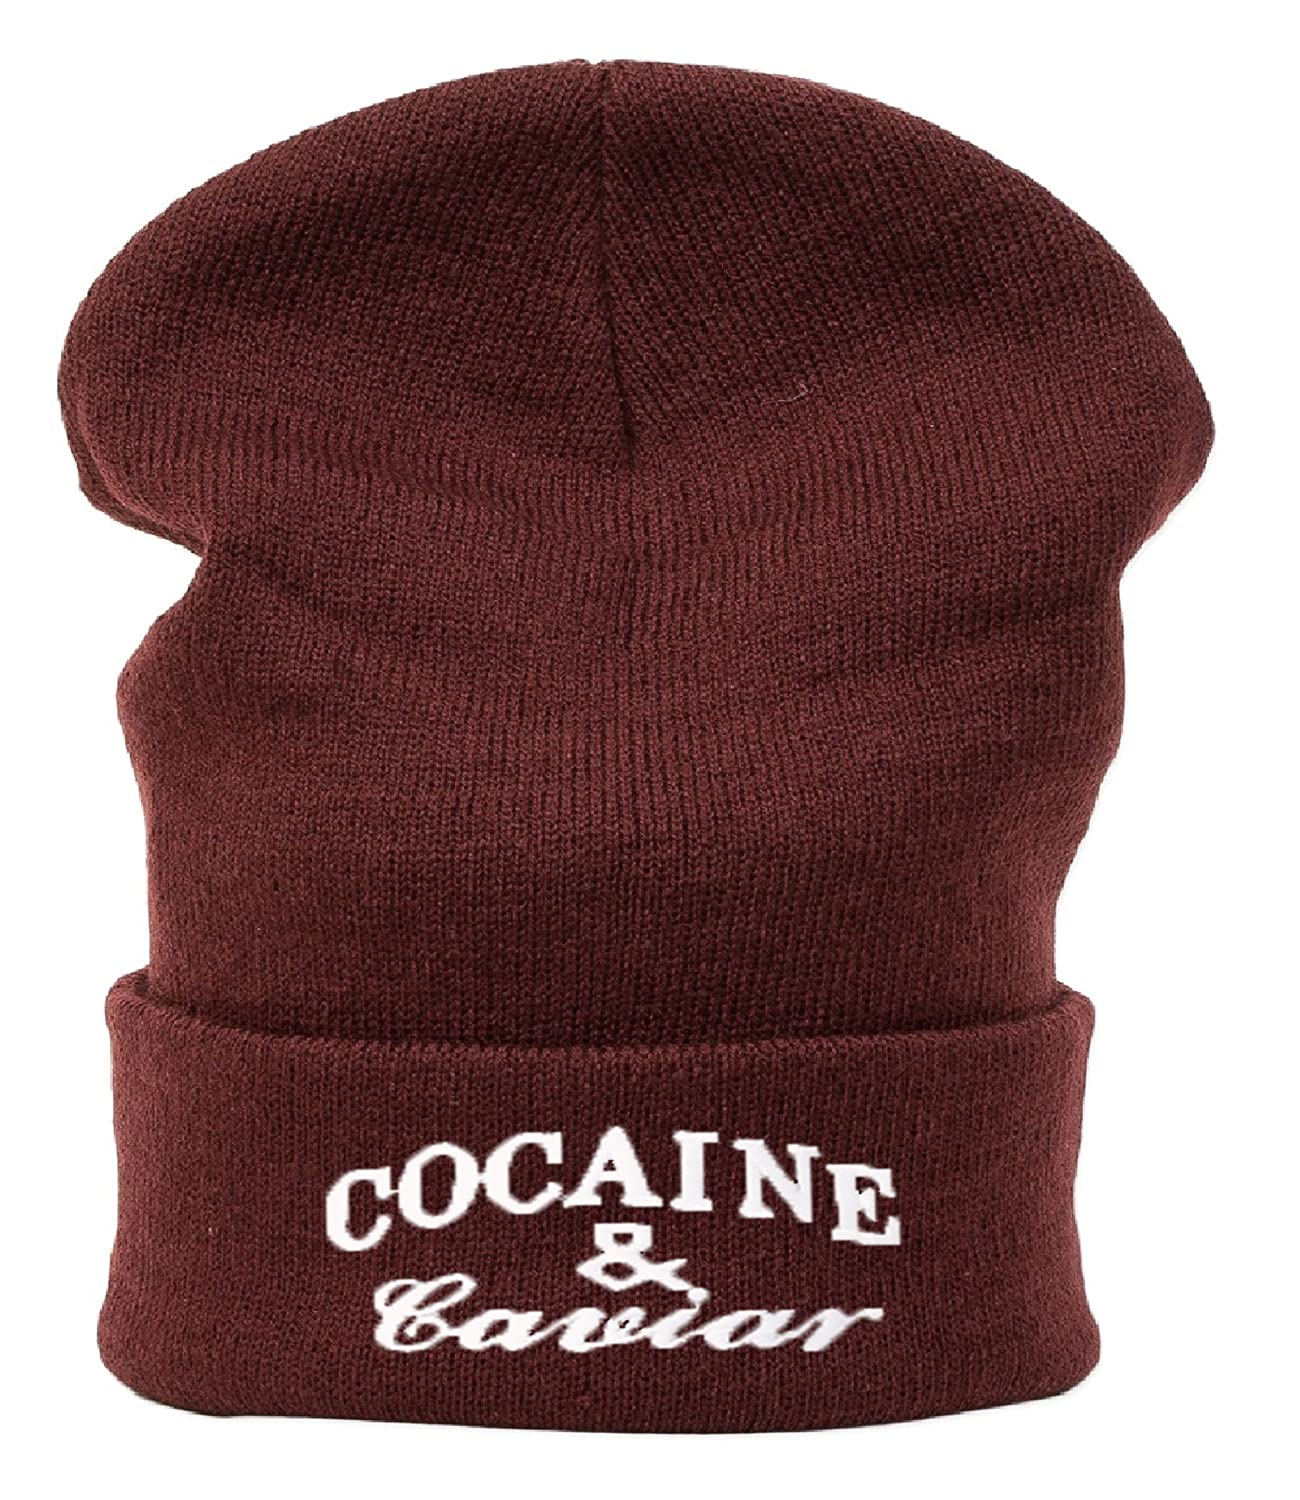 Beanie Hüte Mützen Damen Herren Bad Hair Day Bastard Meow 1994 Wasted Commes HAT HATS Morefazltd (TM)((cocaine & cavior))